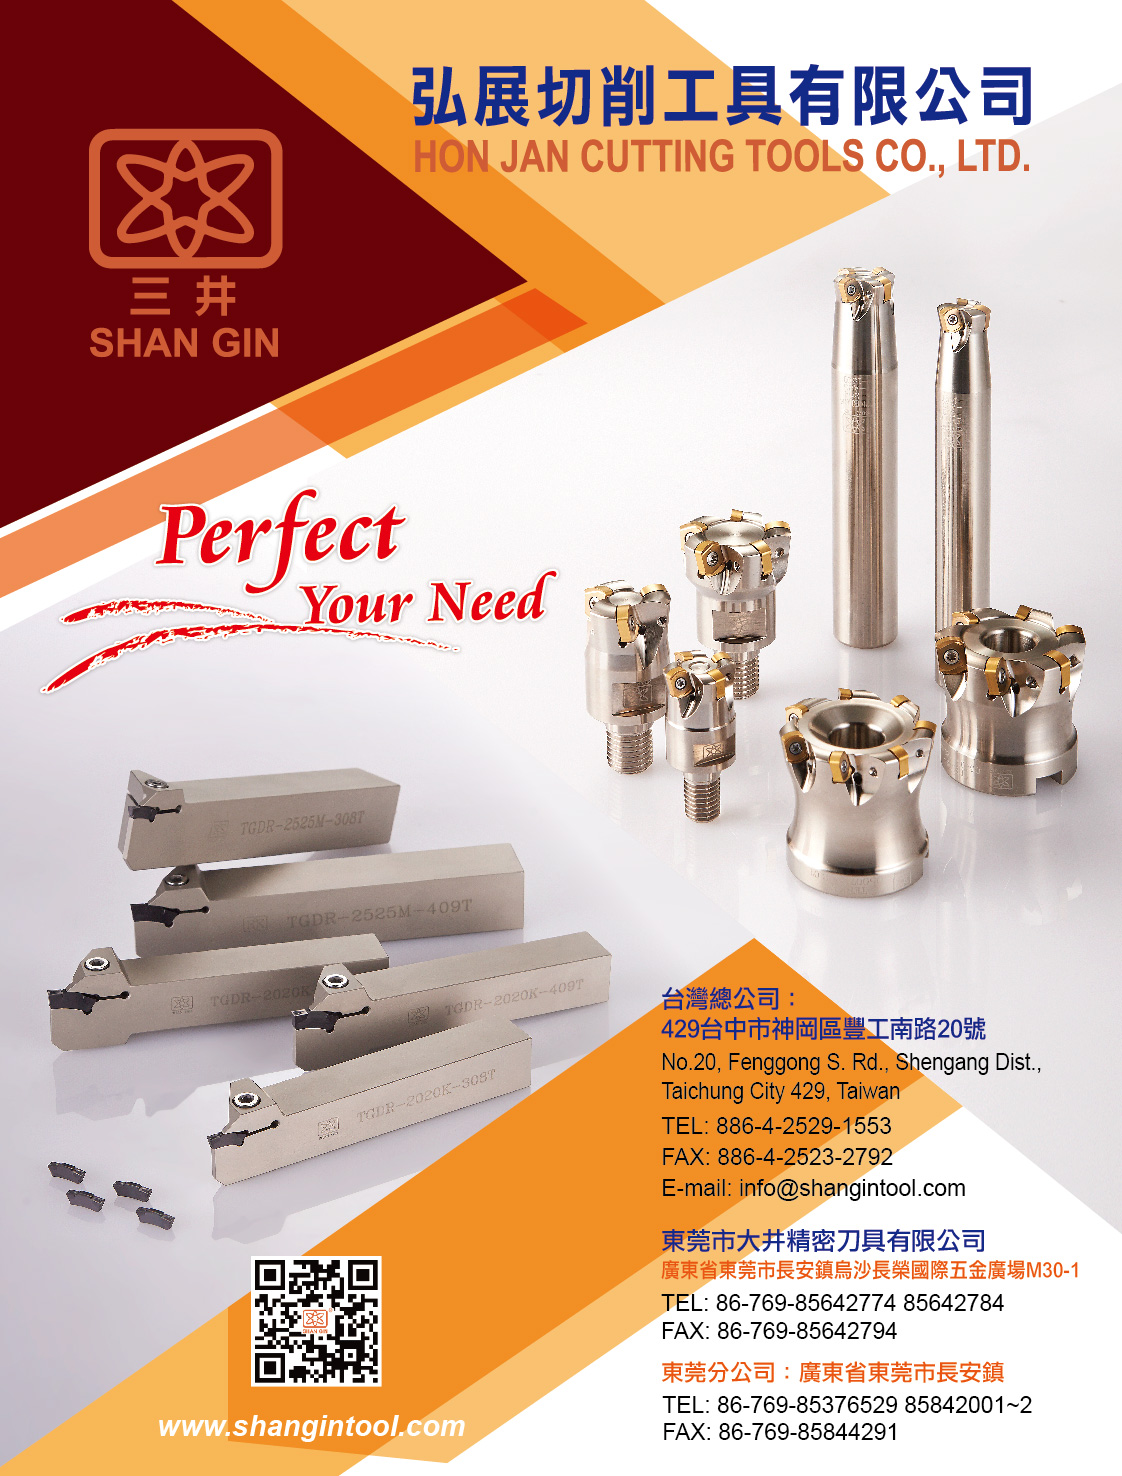 HON JAN CUTTING TOOLS CO., LTD.